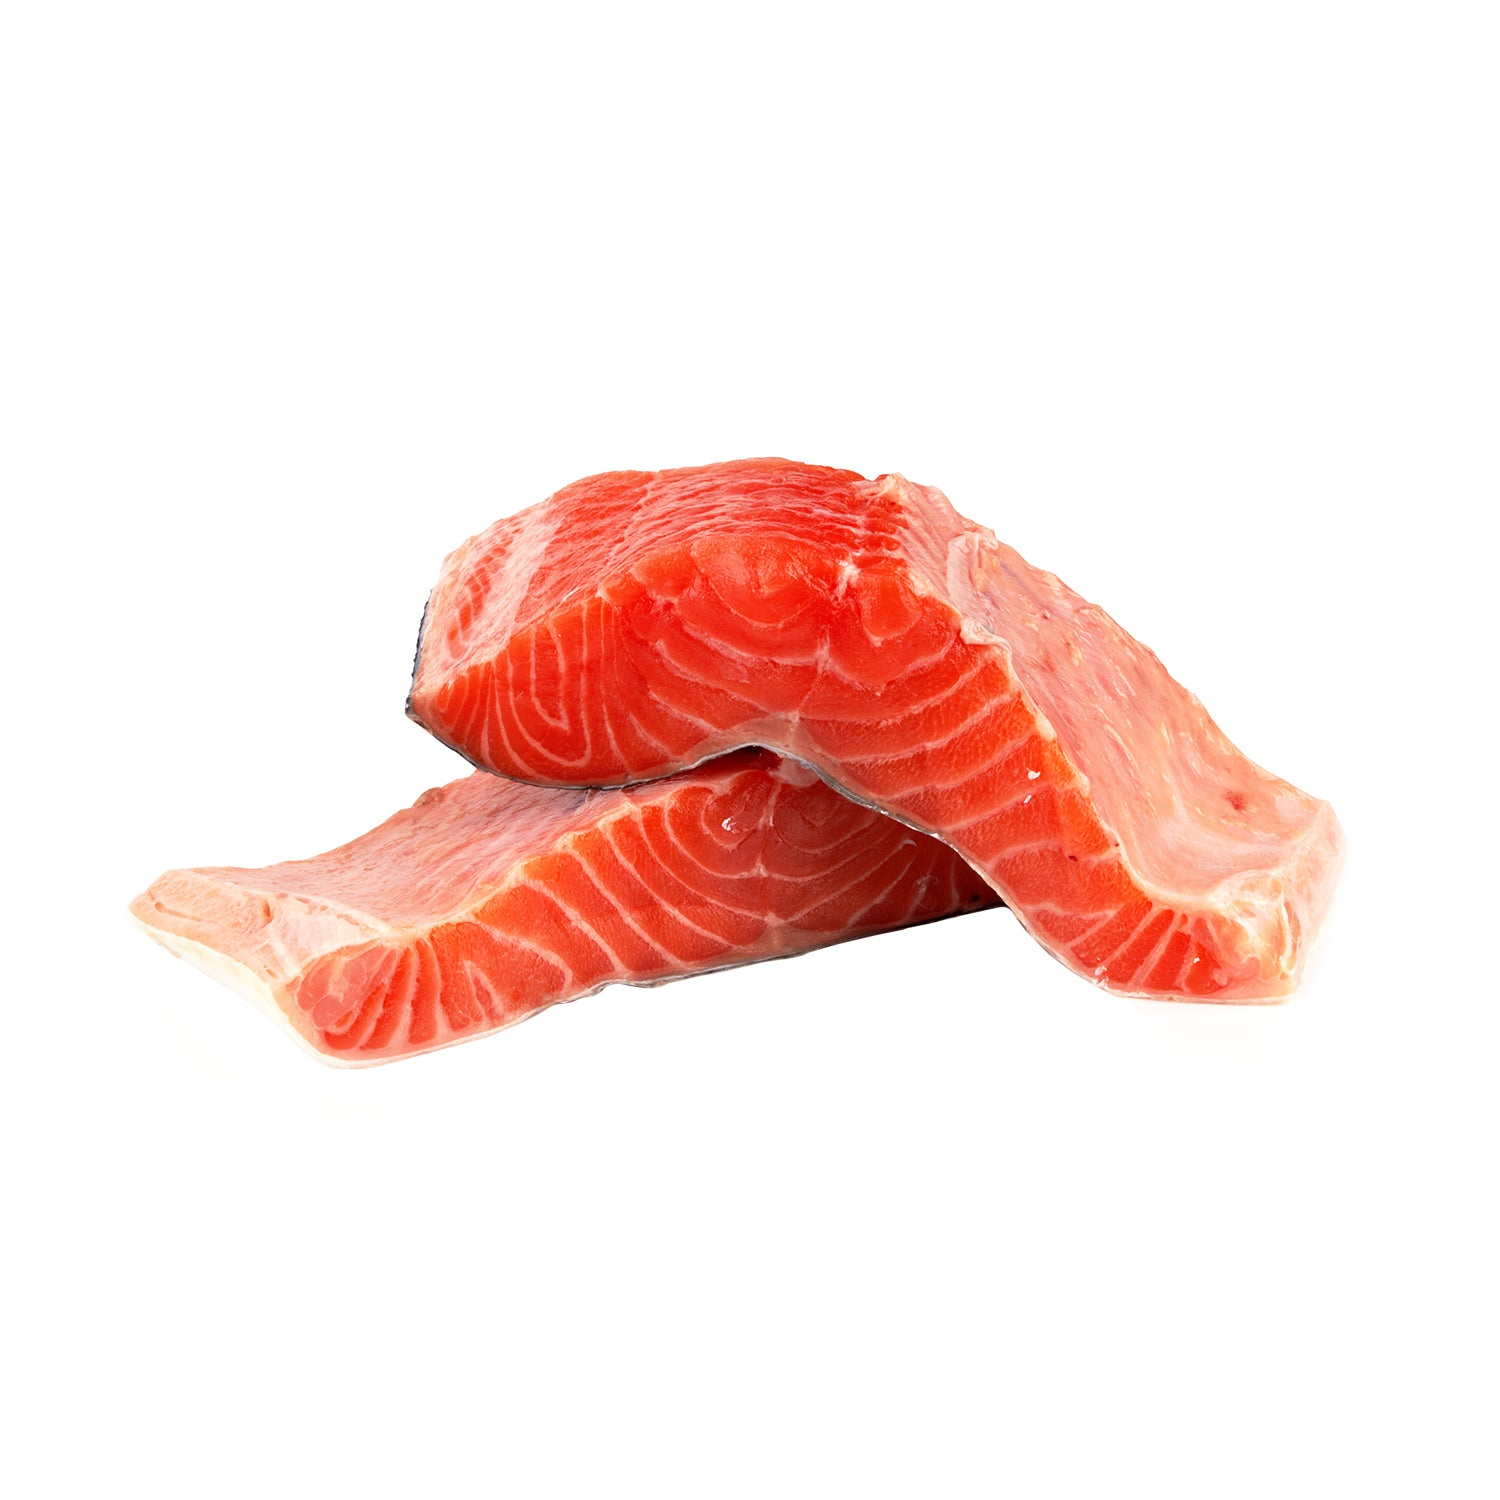 Frozen Chilean Salmon Portion [500g]-Taste Singapore